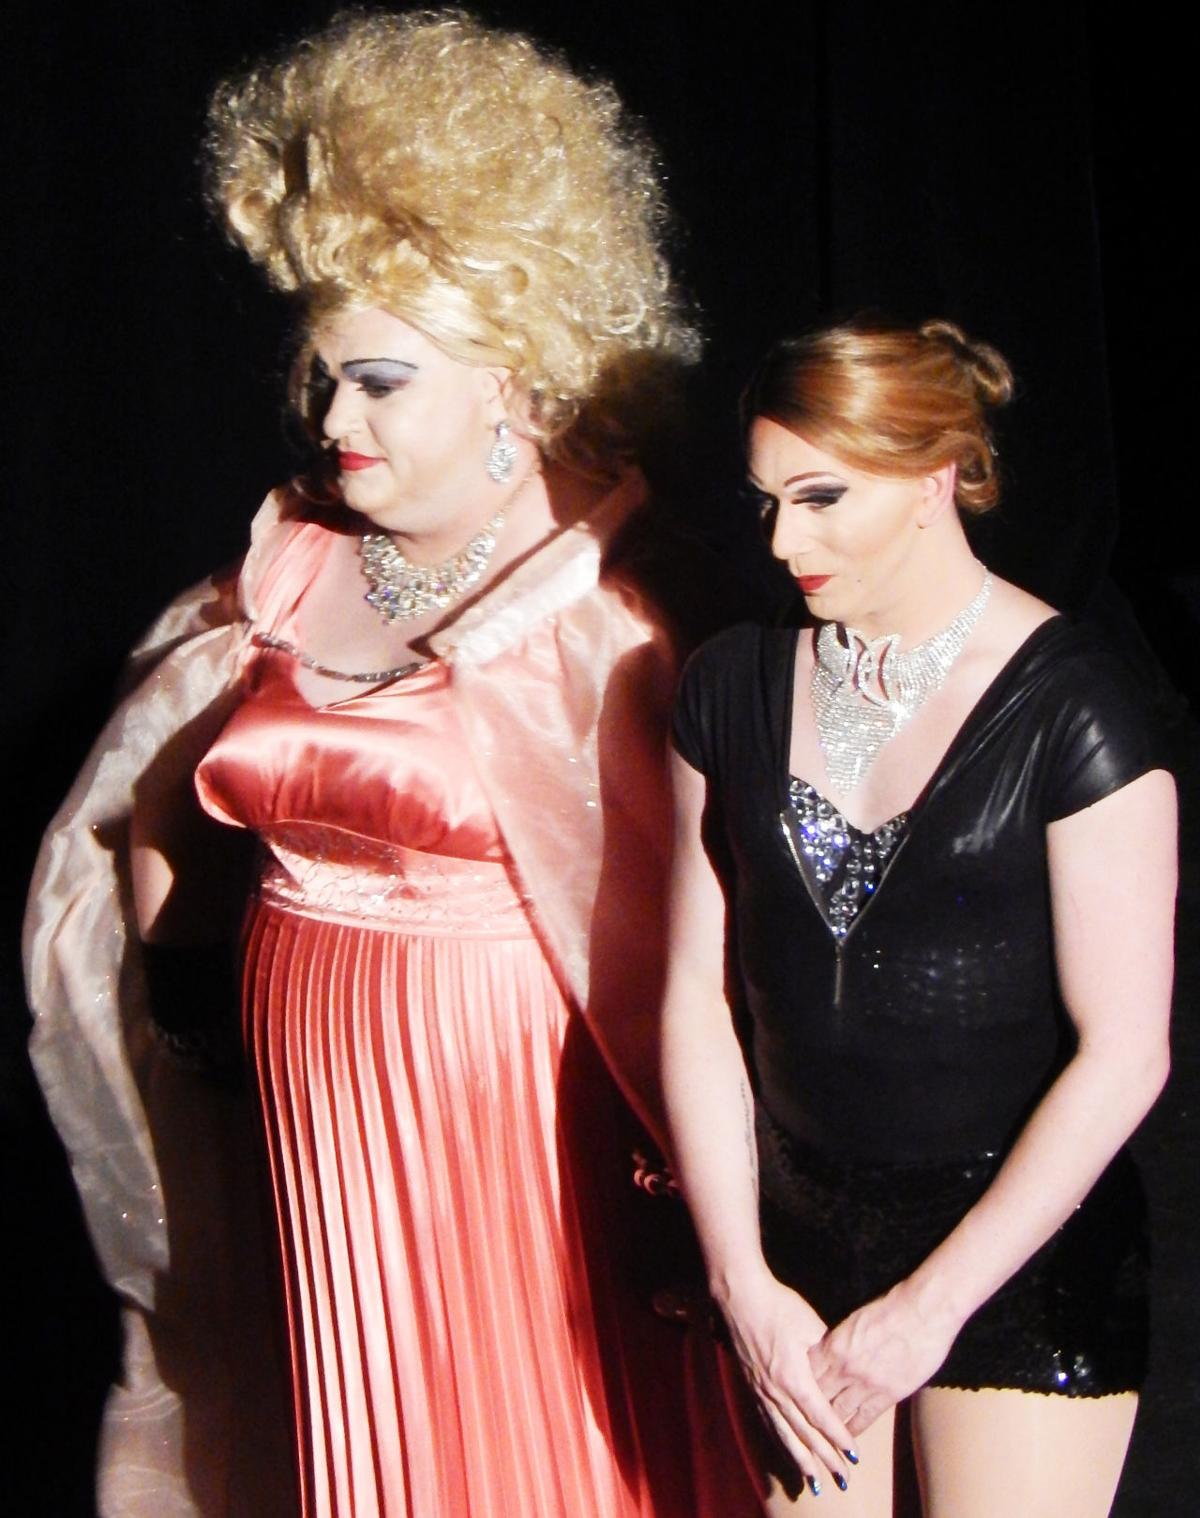 Drag show photo one